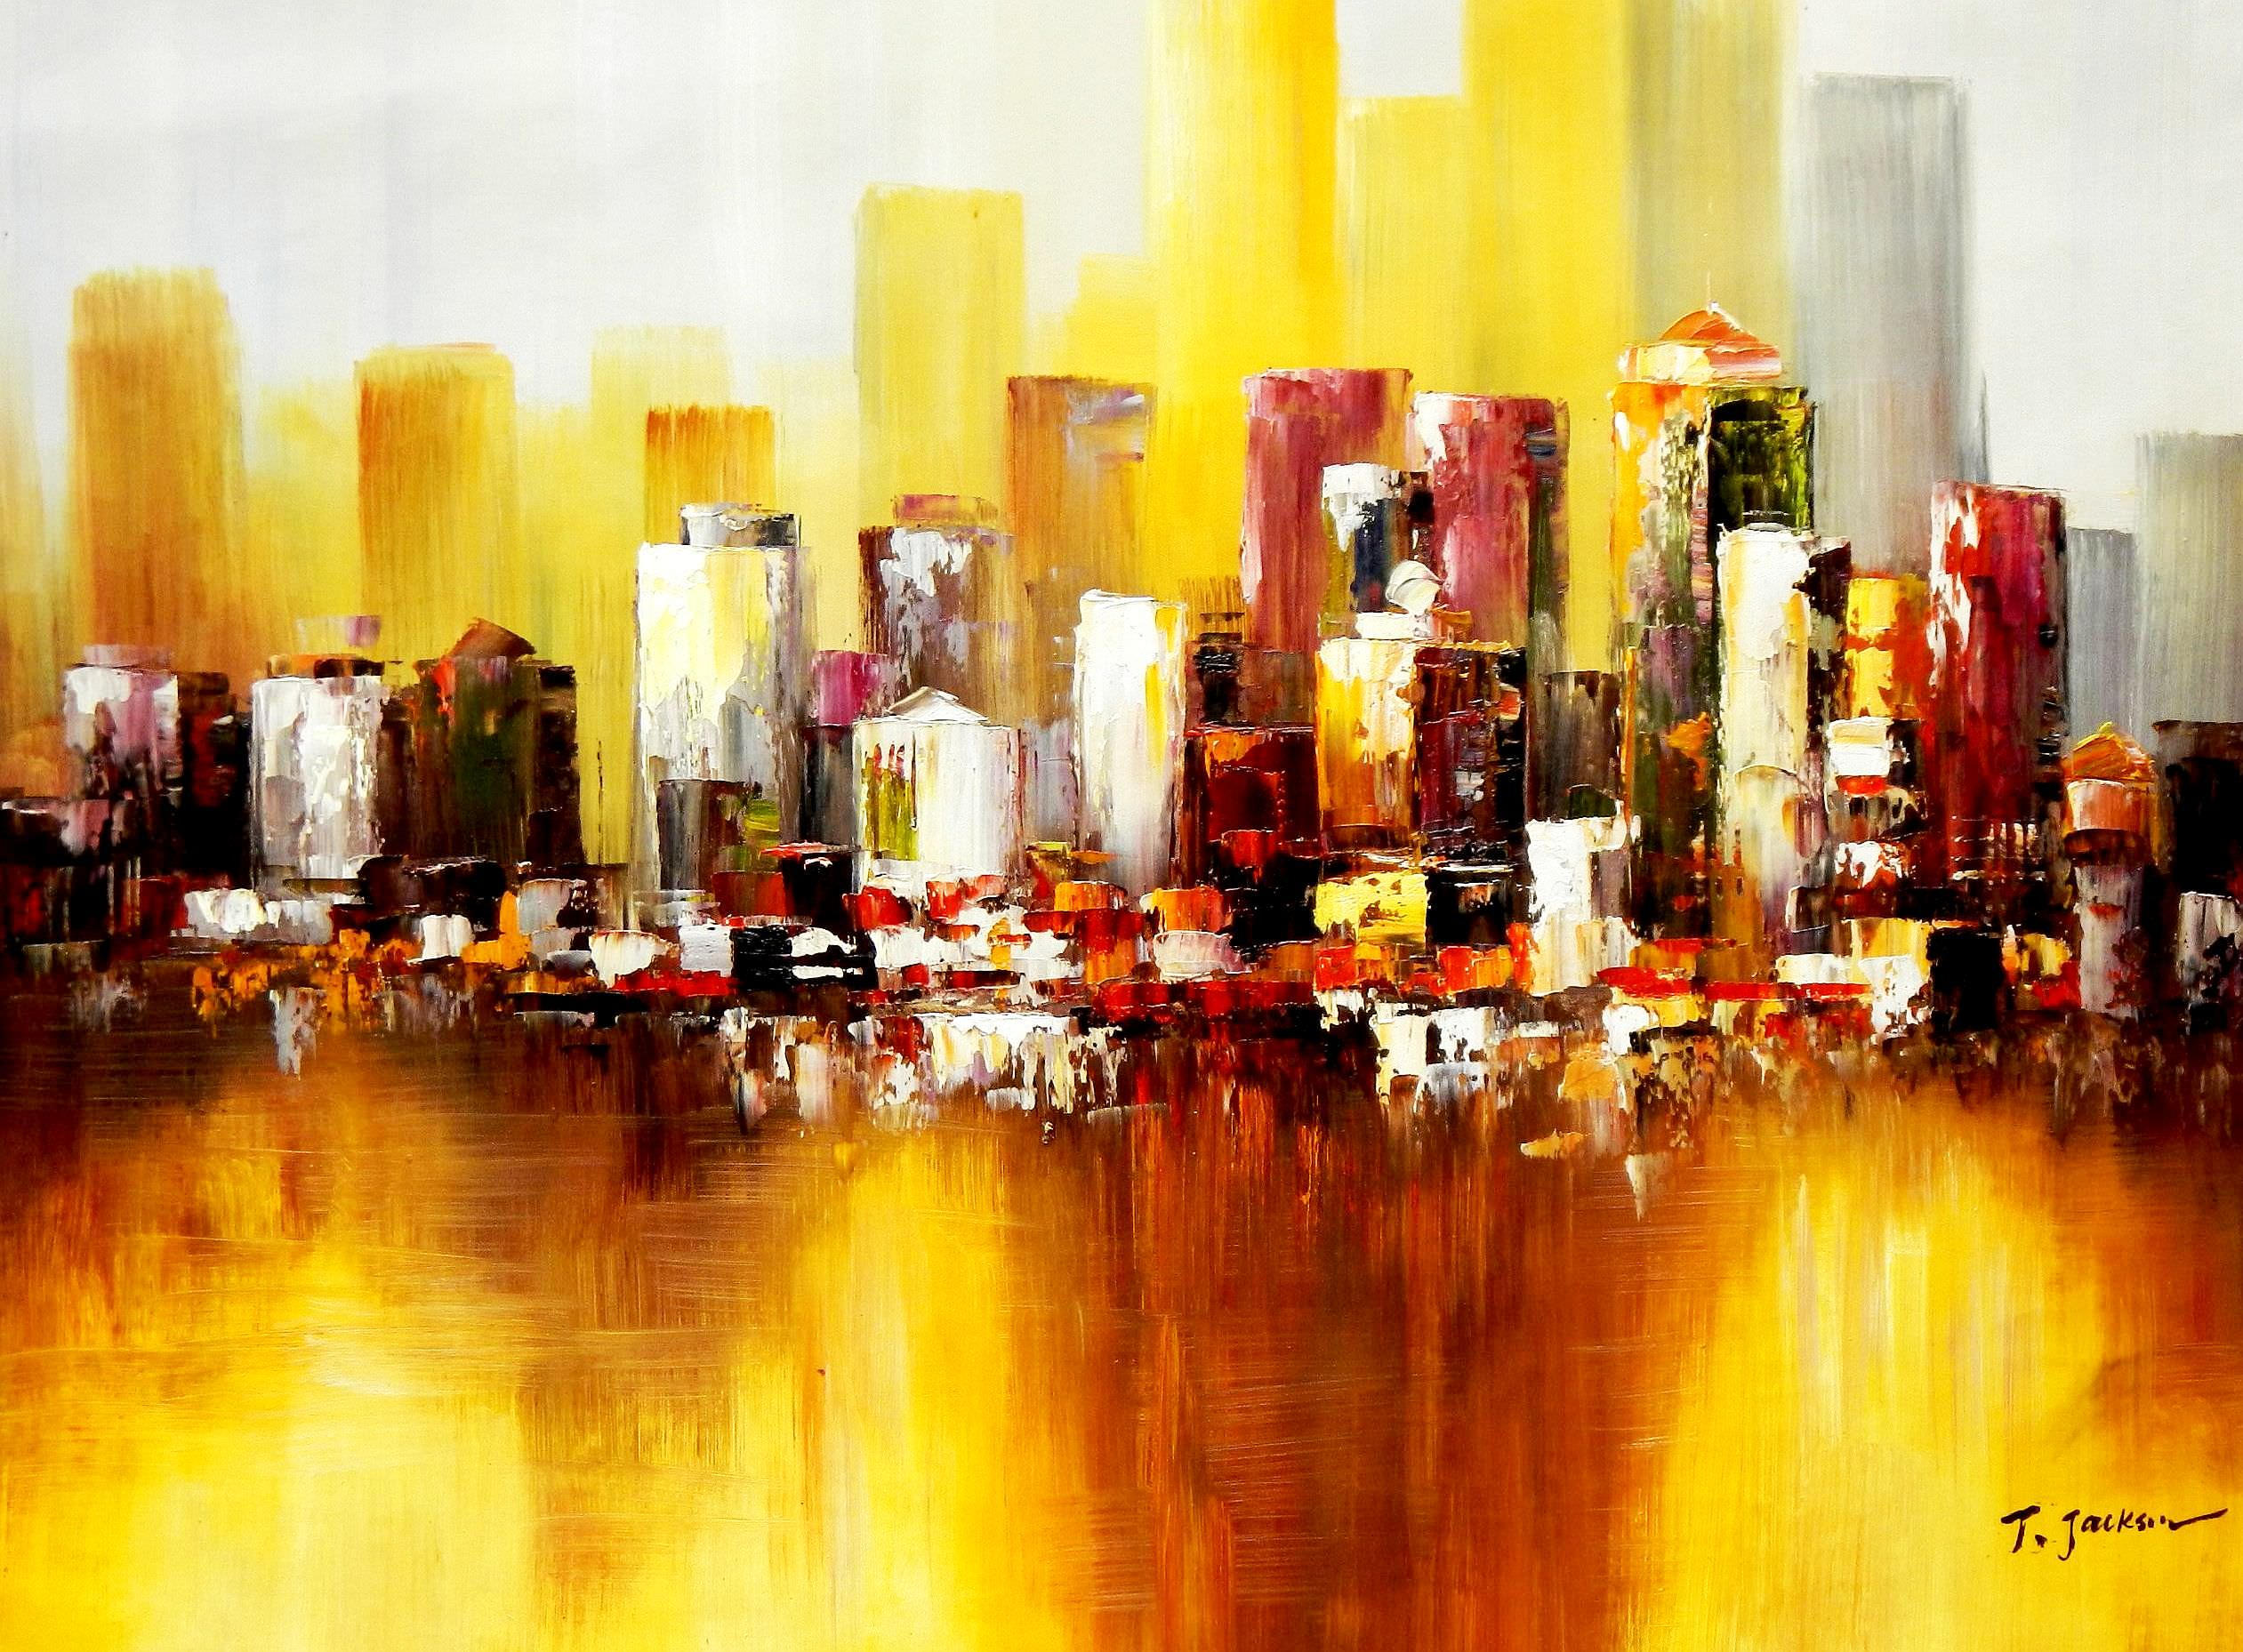 Abstrakt New York Manhattan Skyline im Herbst i91872 G 80x110cm abstraktes Ölbild